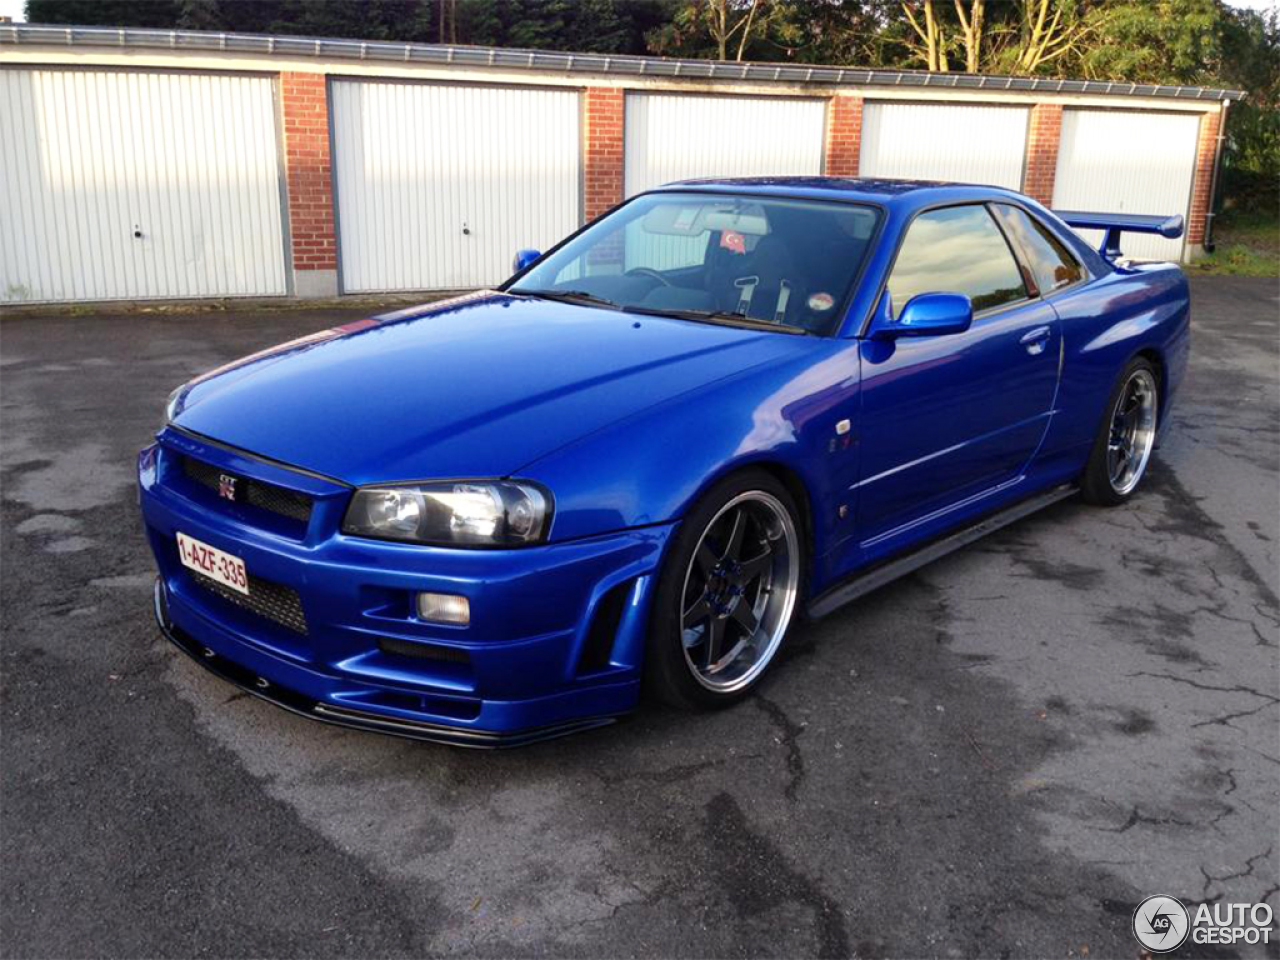 nissan skyline r34 gt r 7 july 2014 autogespot. Black Bedroom Furniture Sets. Home Design Ideas